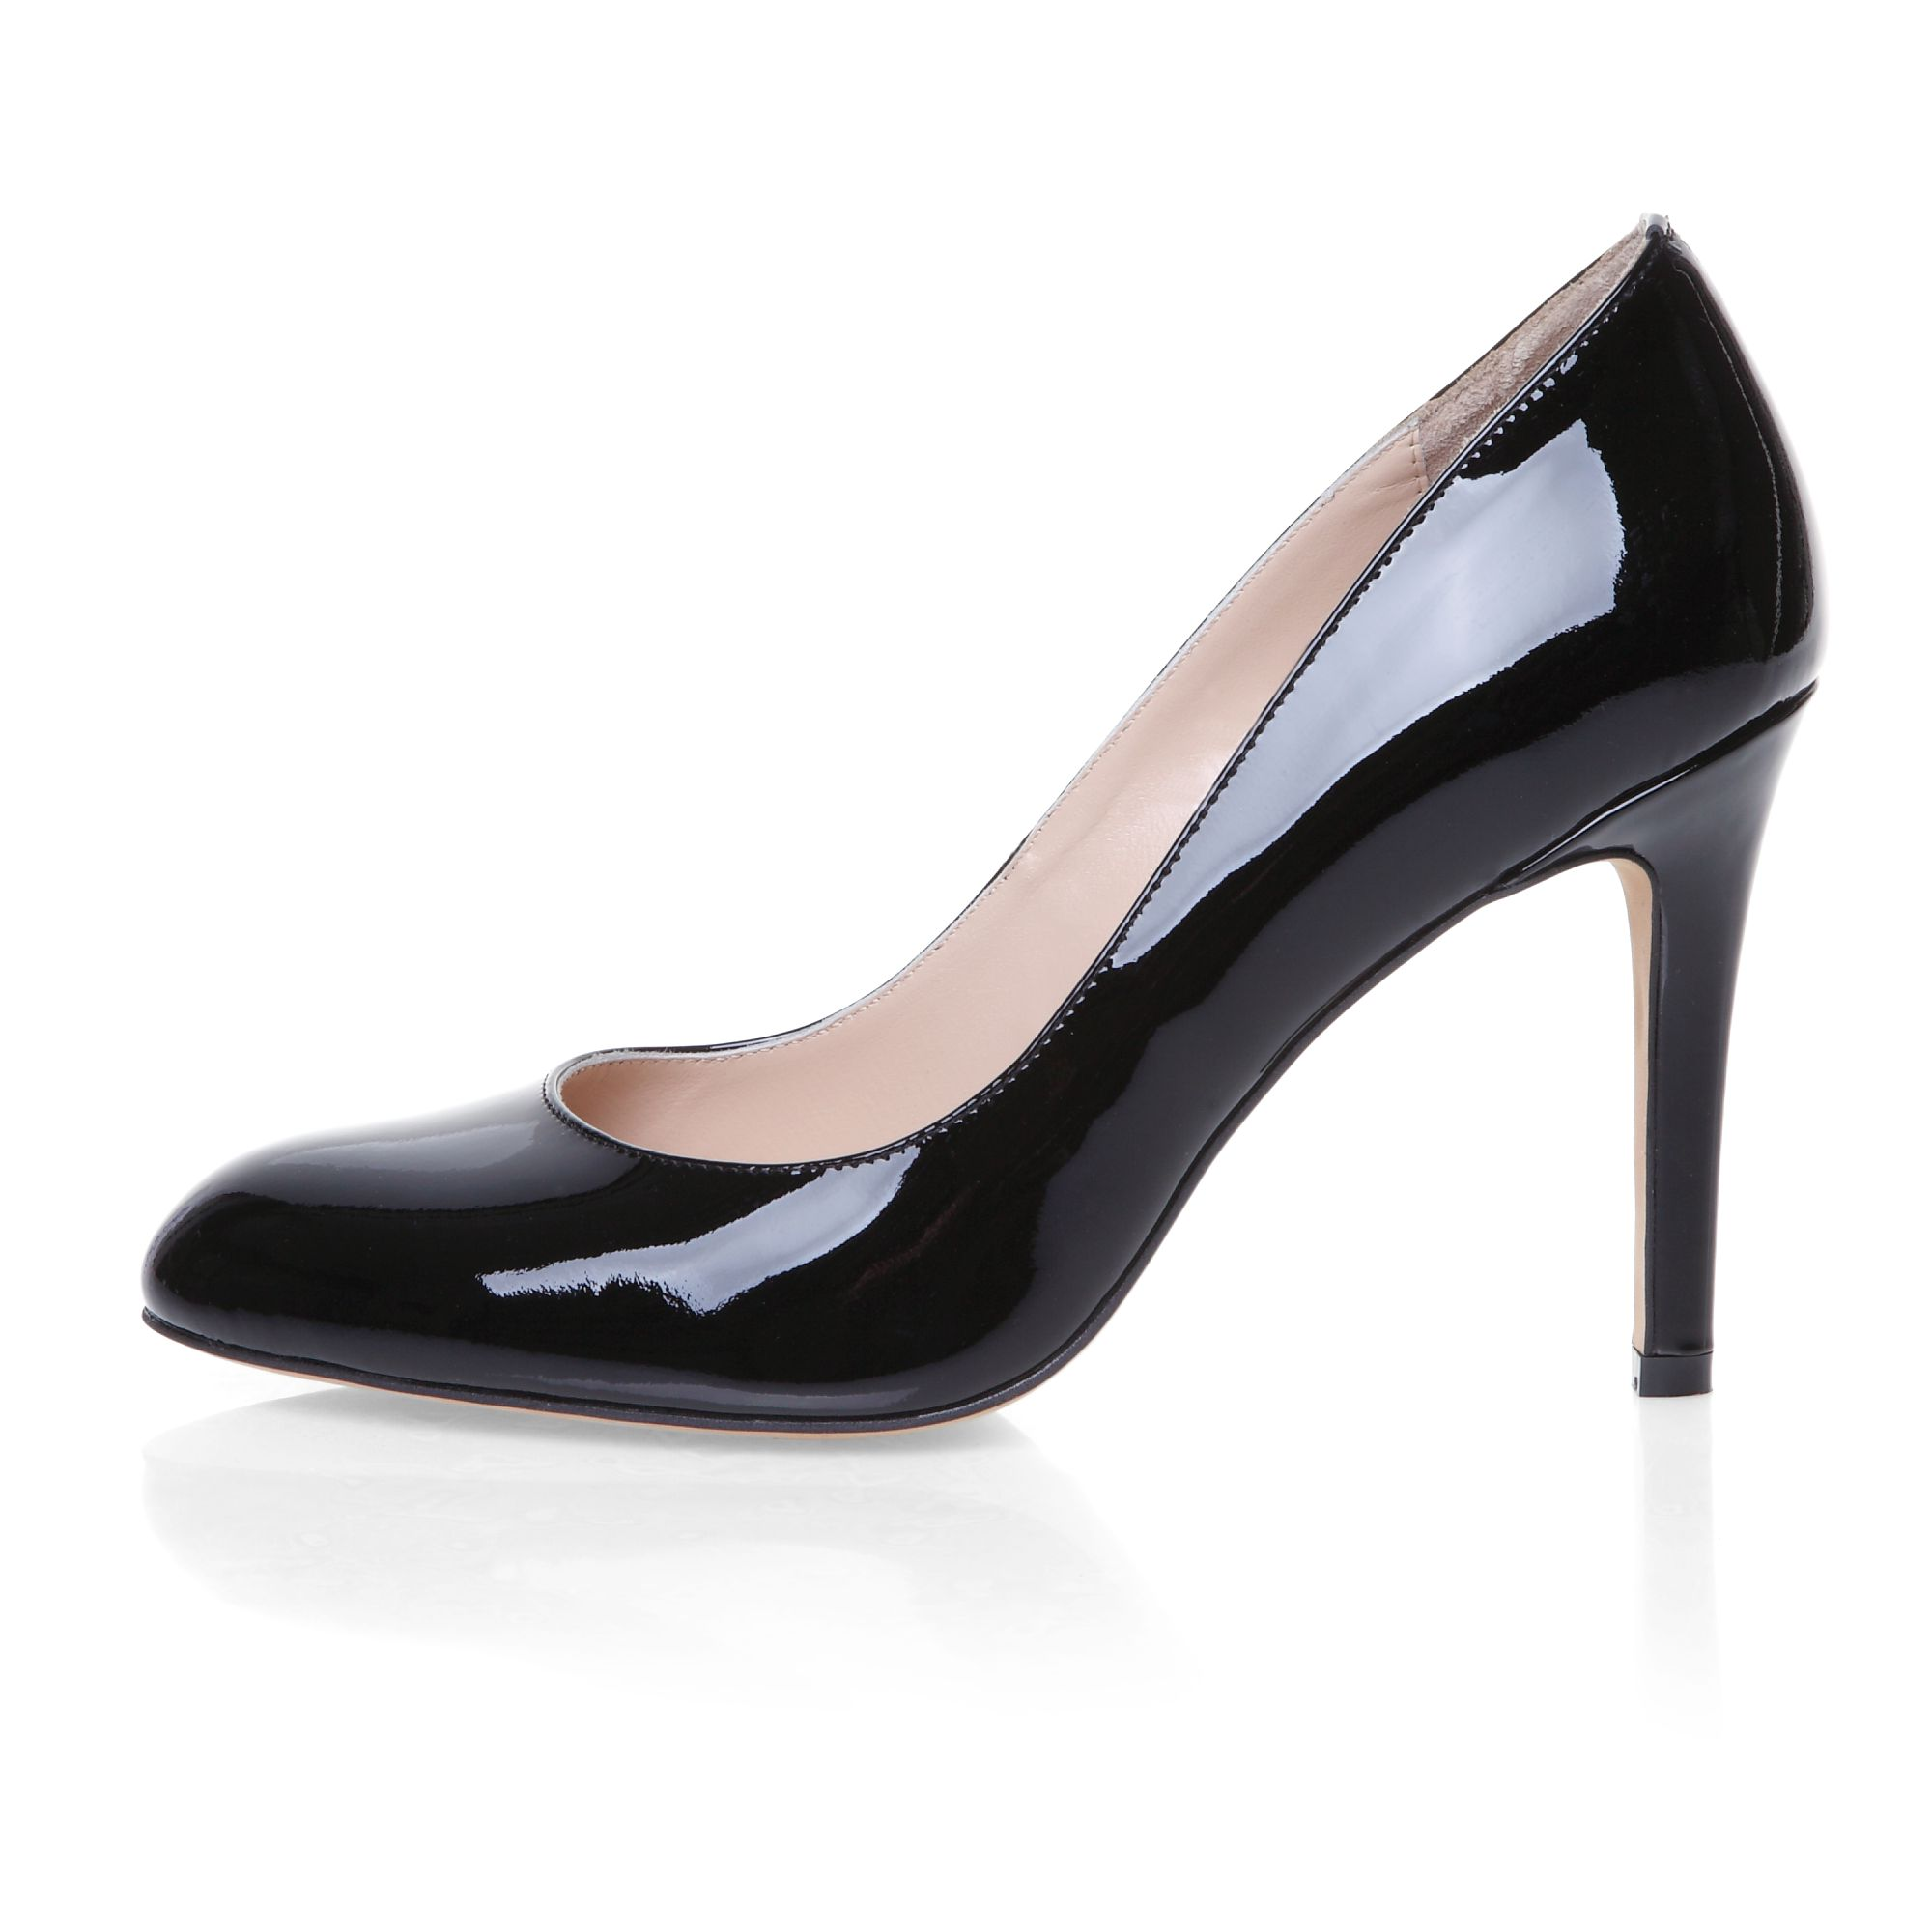 High heeled elegant court shoes